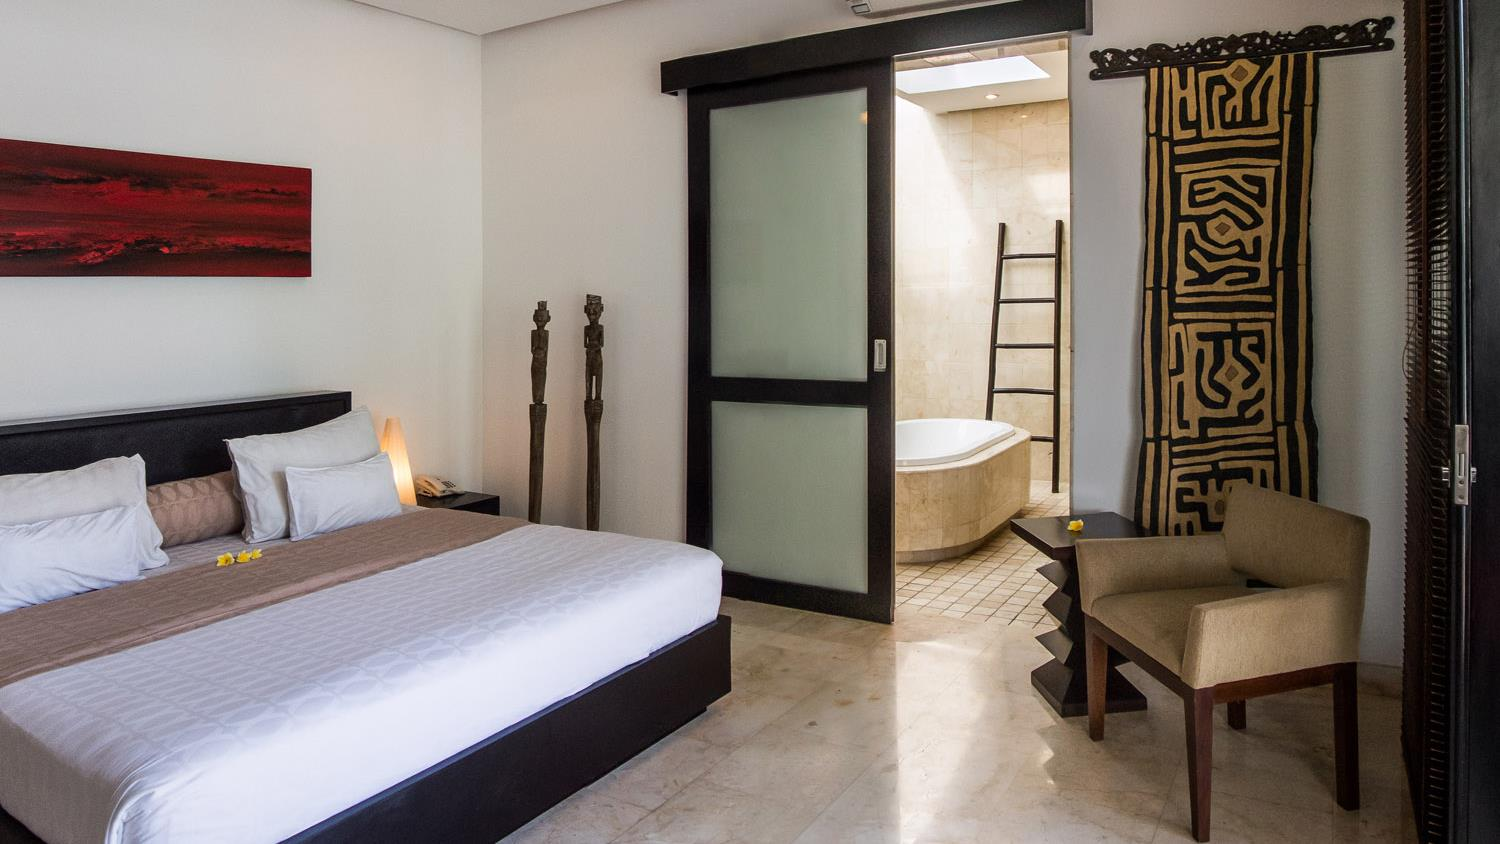 Bedroom and En-Suite Bathroom - Villa Zensa Residence - Seminyak, Bali